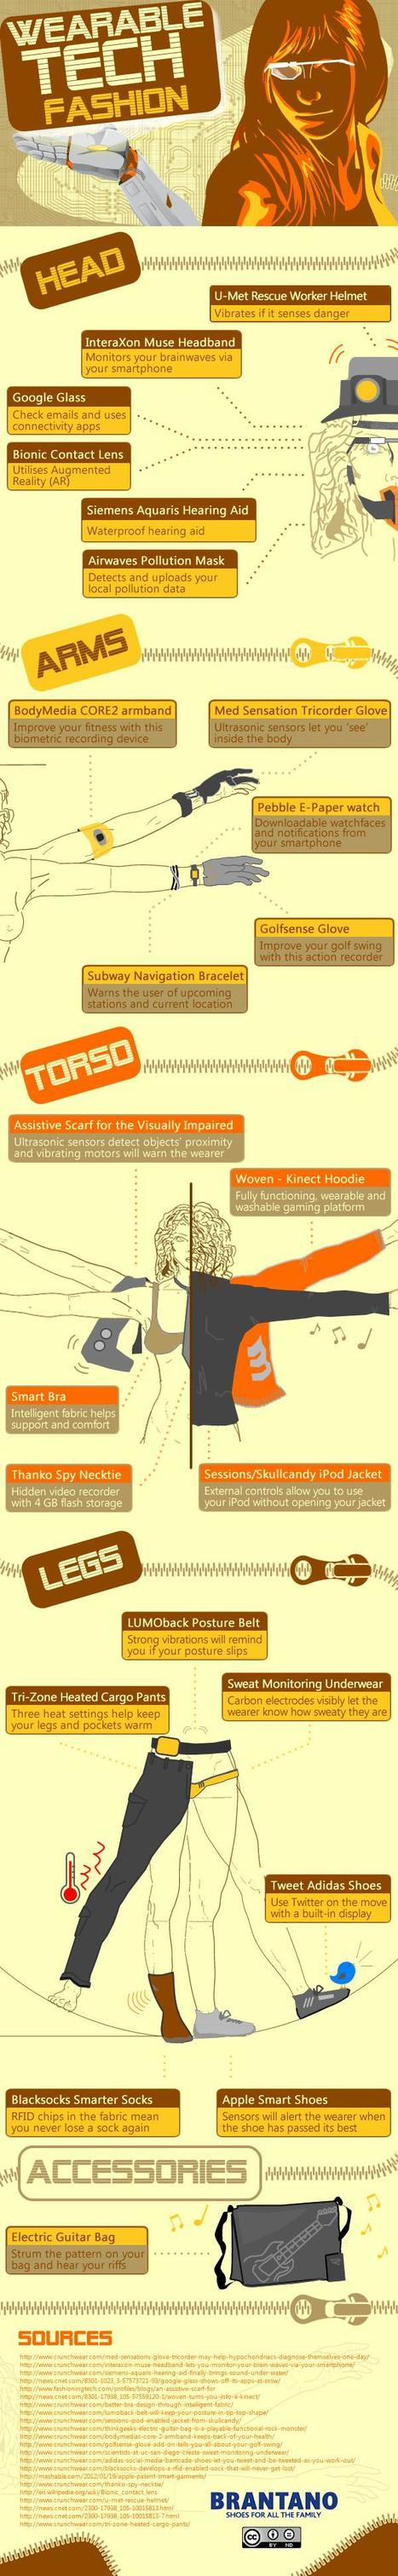 Wearable Tech Fashion: What Would You Try On? #INFOGRAPHIC | Technology and Risks | Scoop.it